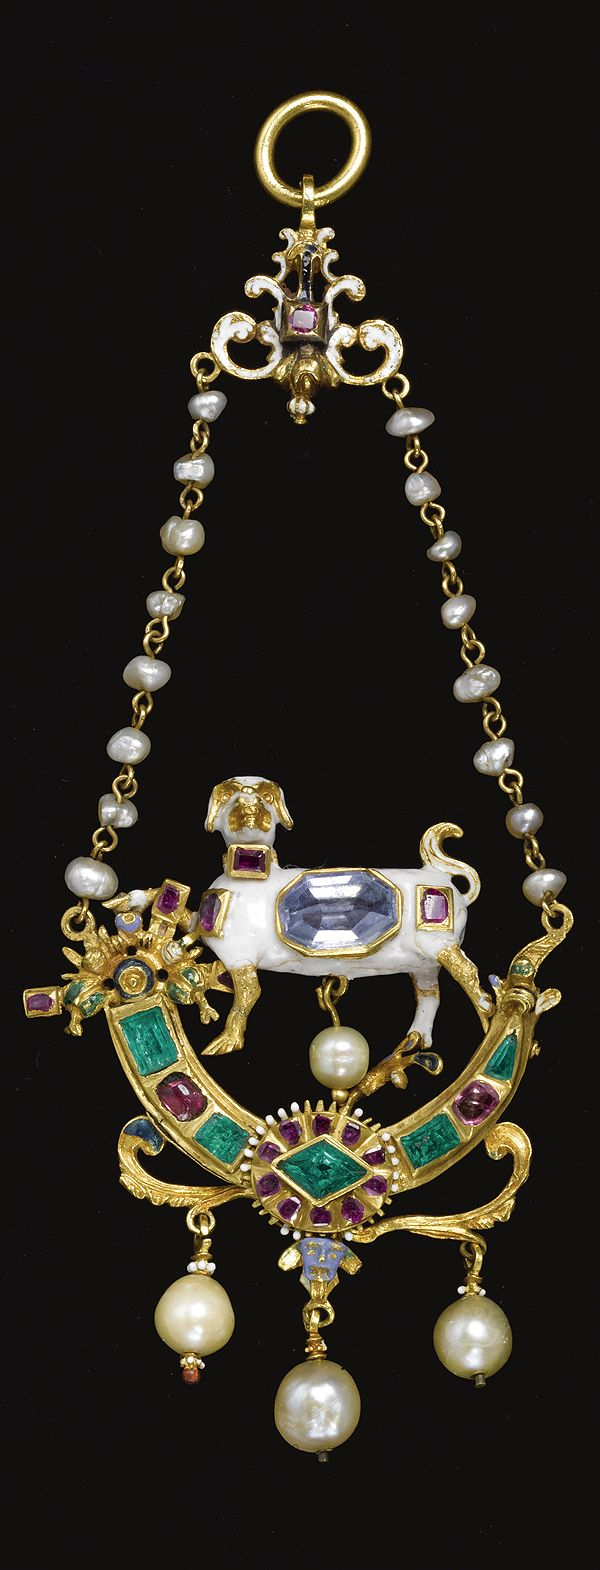 A Renaissance style diamond-, ruby- and emerald-set, enamelled gilt silver-mounted and pearl pendant. centered by a dog. 5 in. including chain; 12.7 cm.